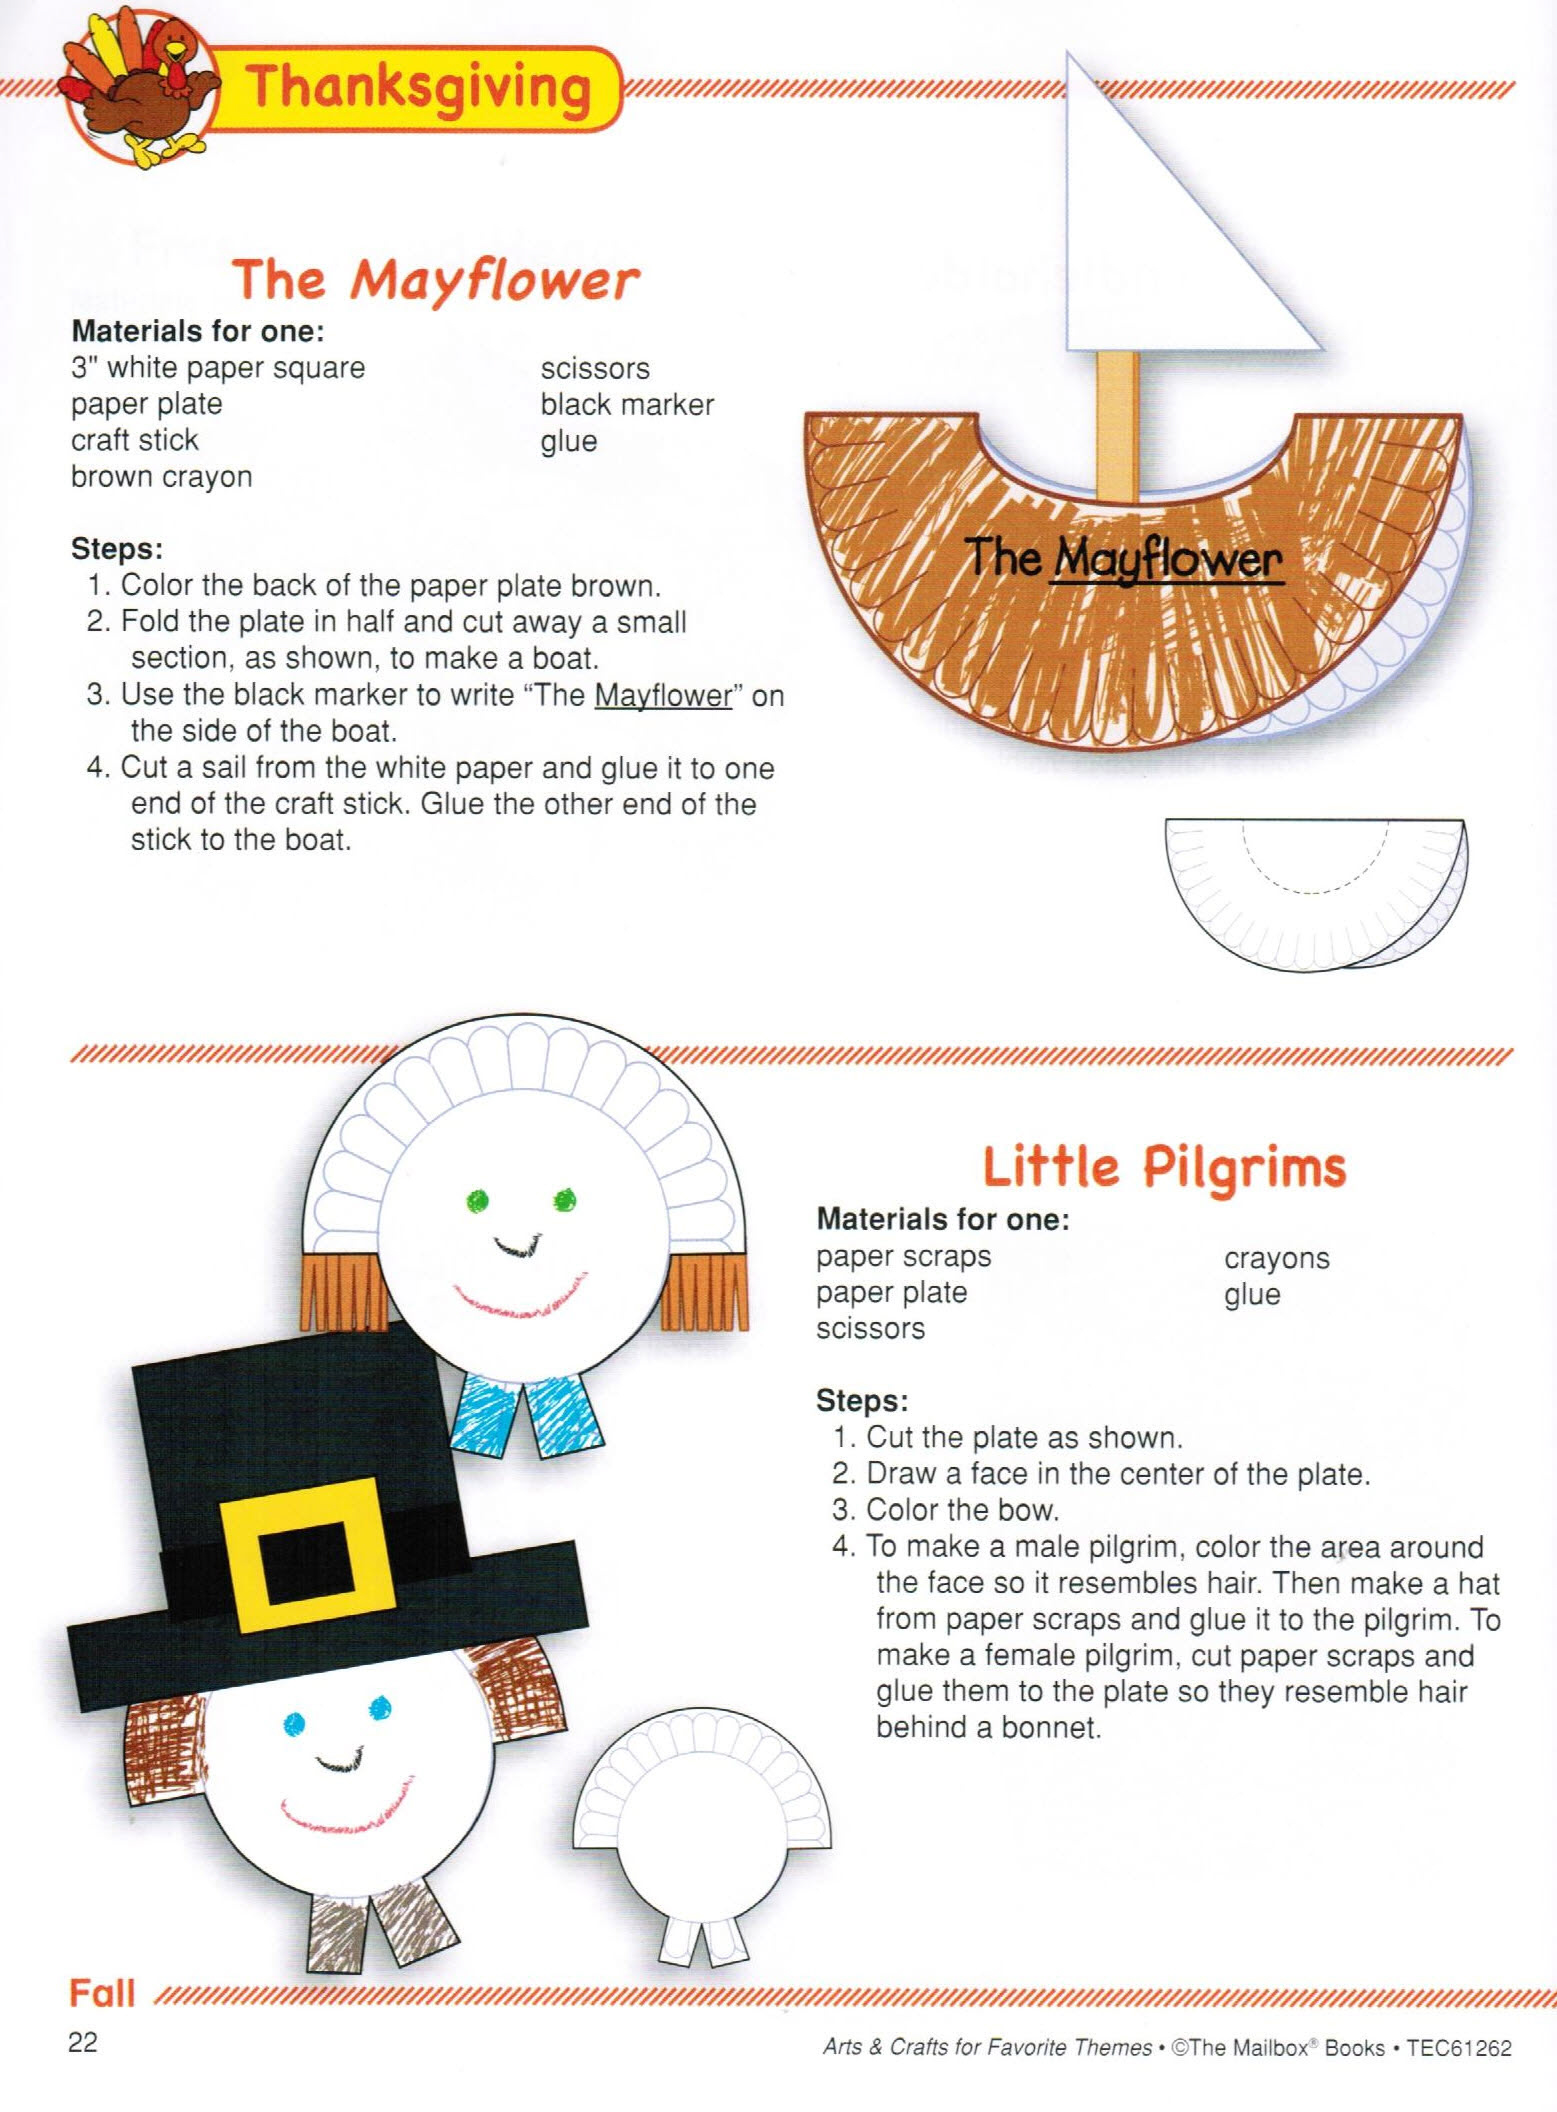 Simple and cute Mayflower and Pilgrim crafts made from paper plates.